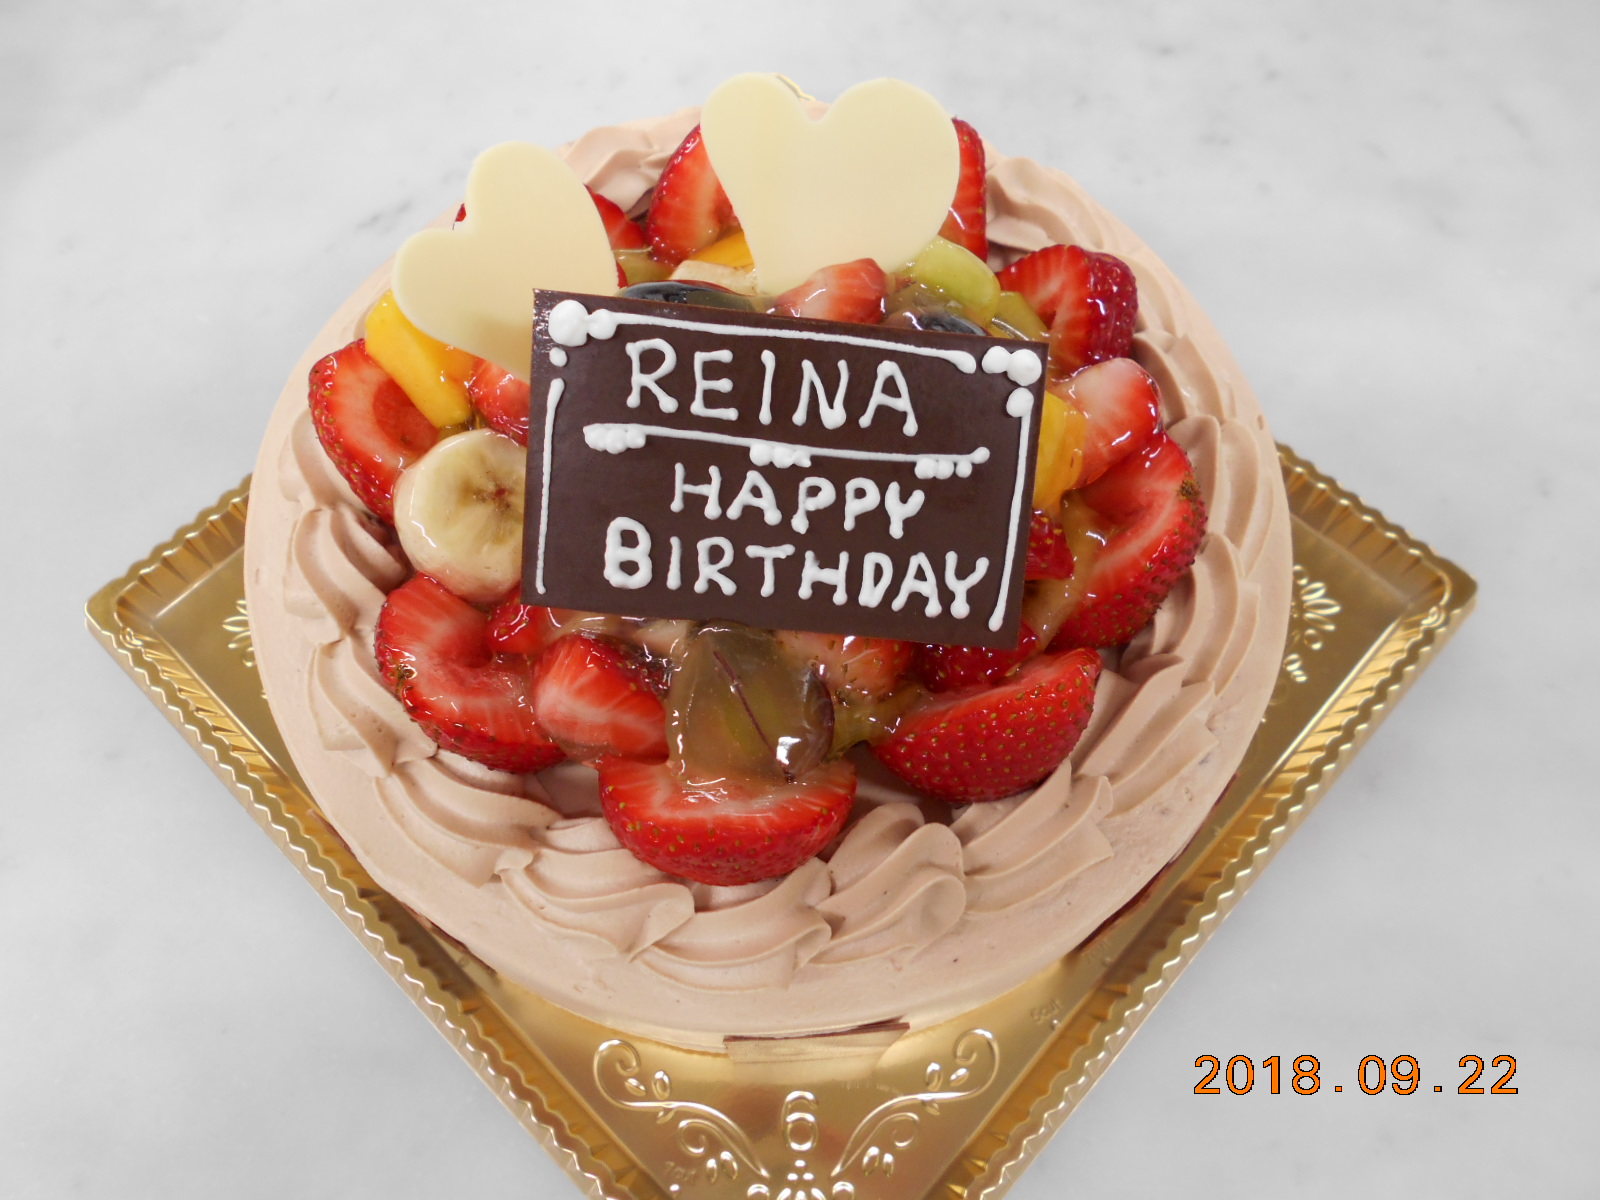 REINA HAPPY BIRTHDAY